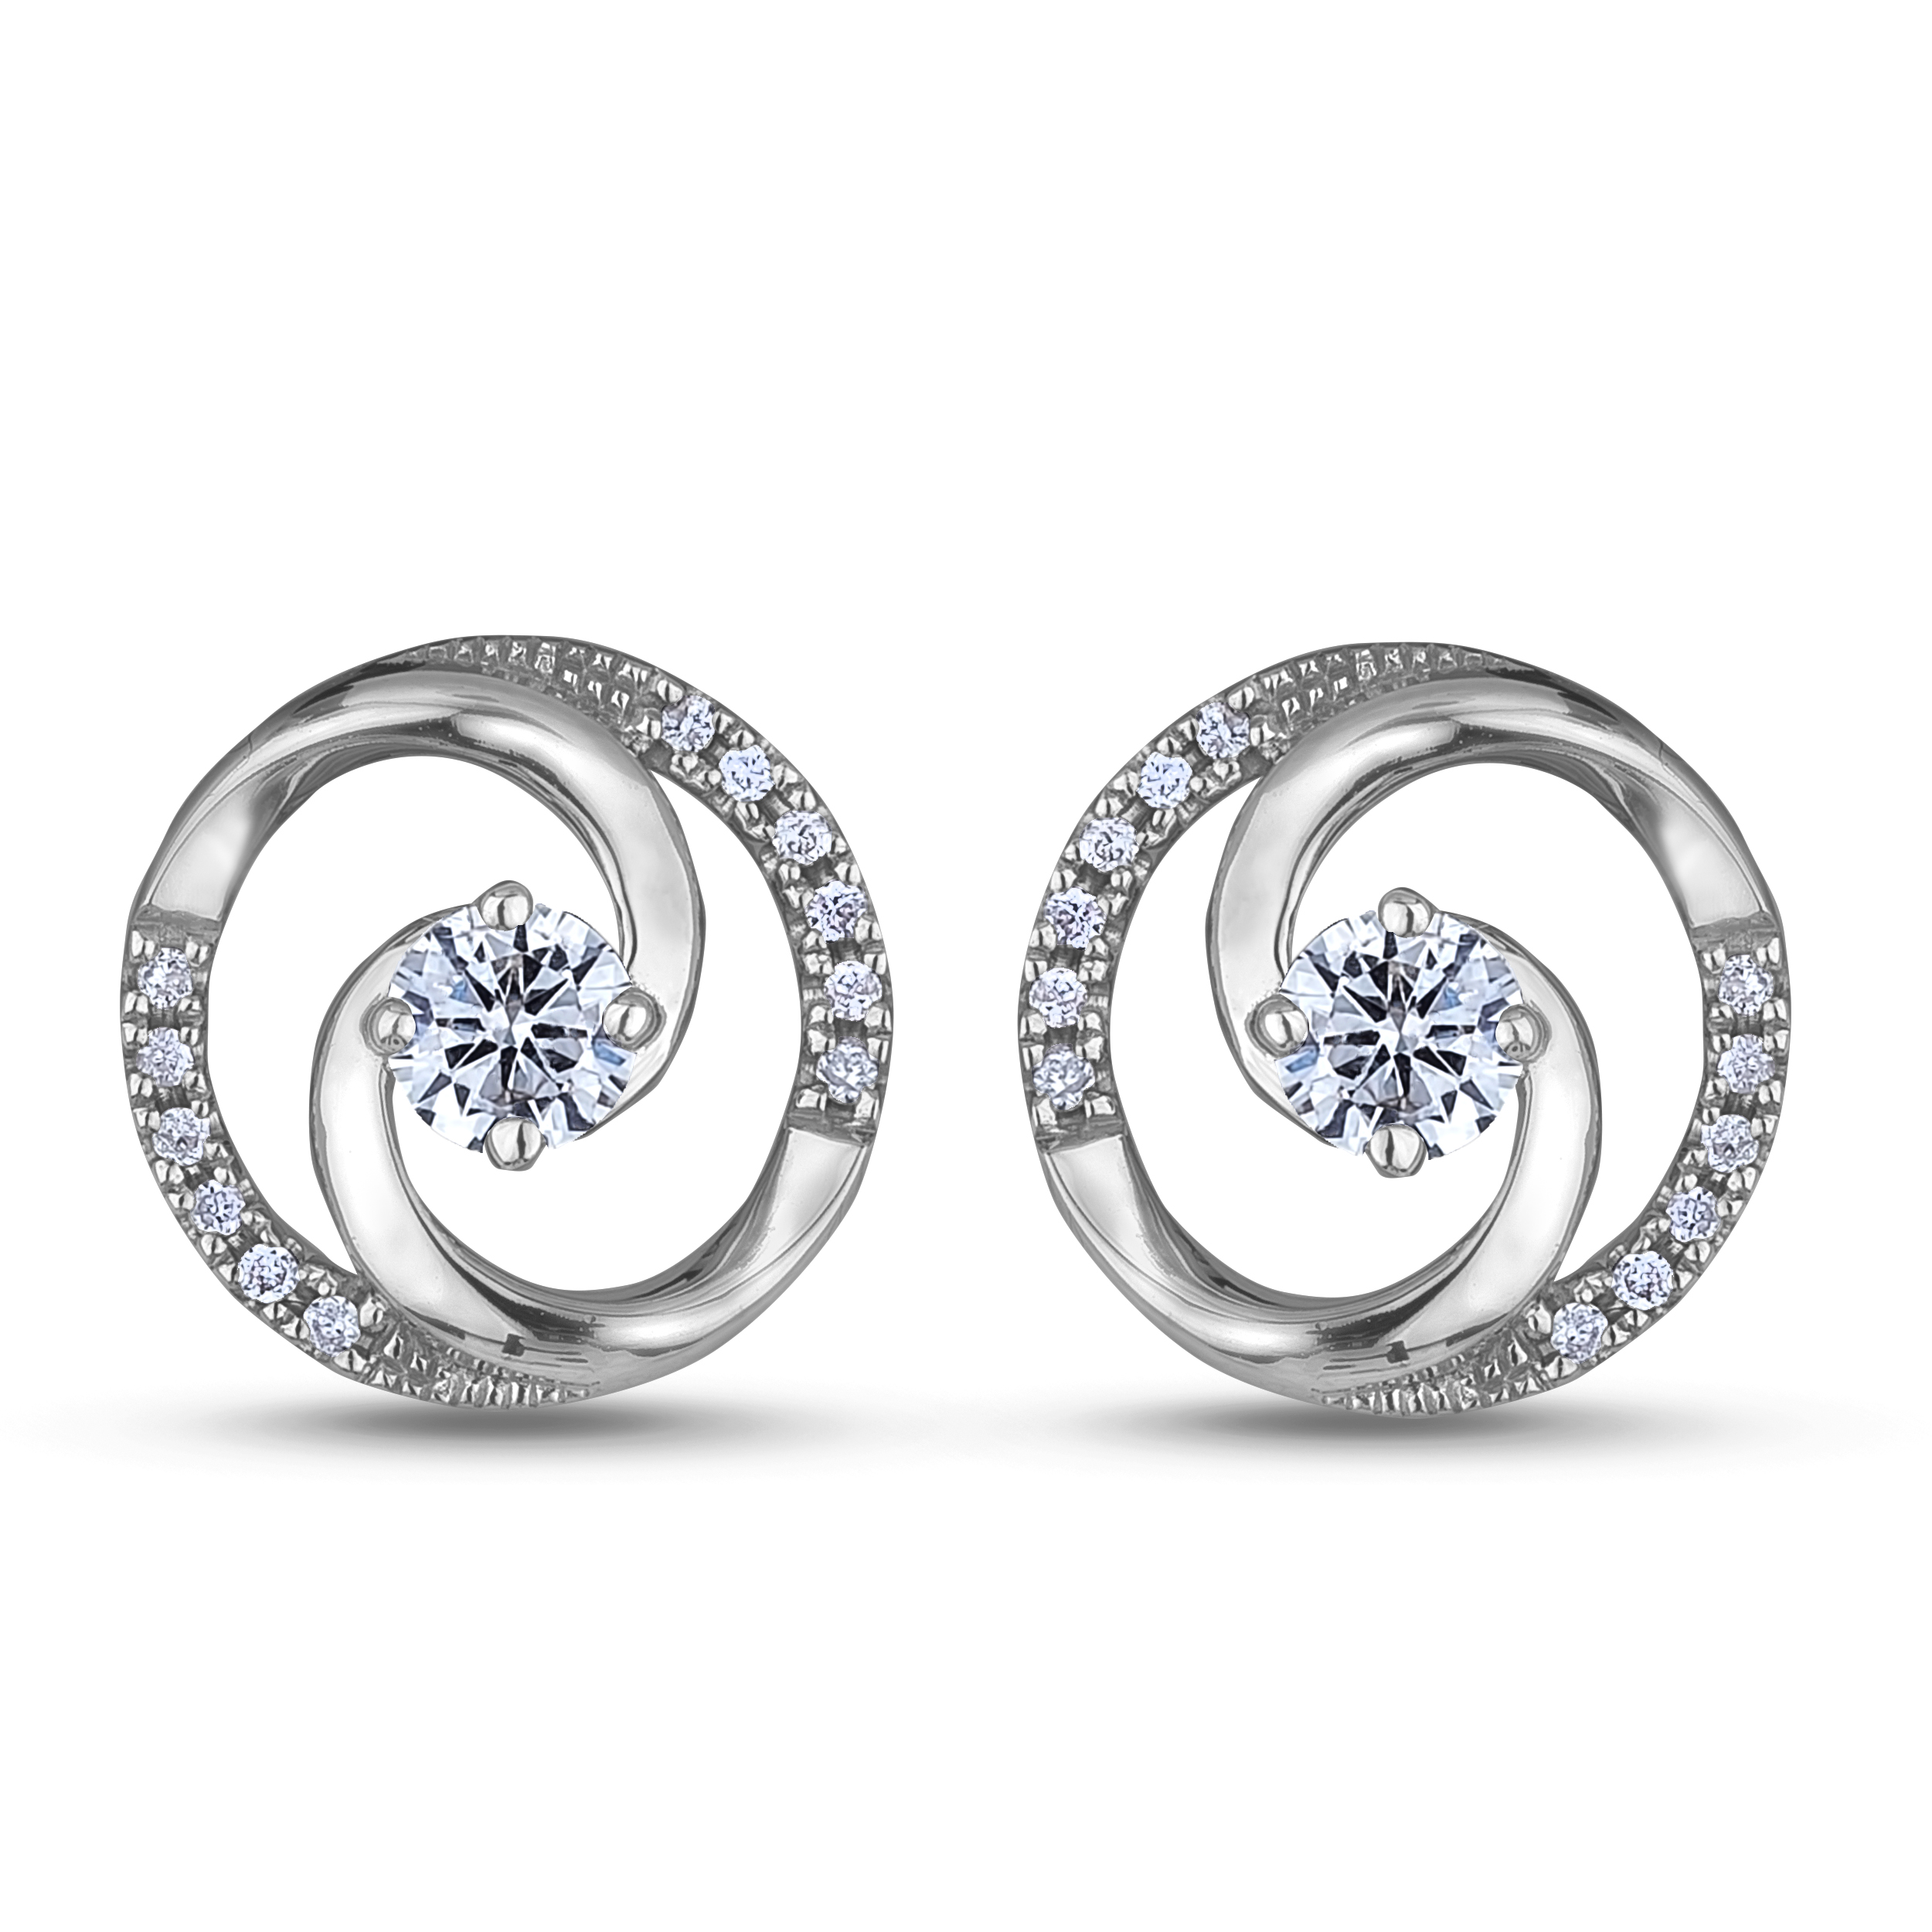 Diamond Stud Earrings SGE345 (Earrings)